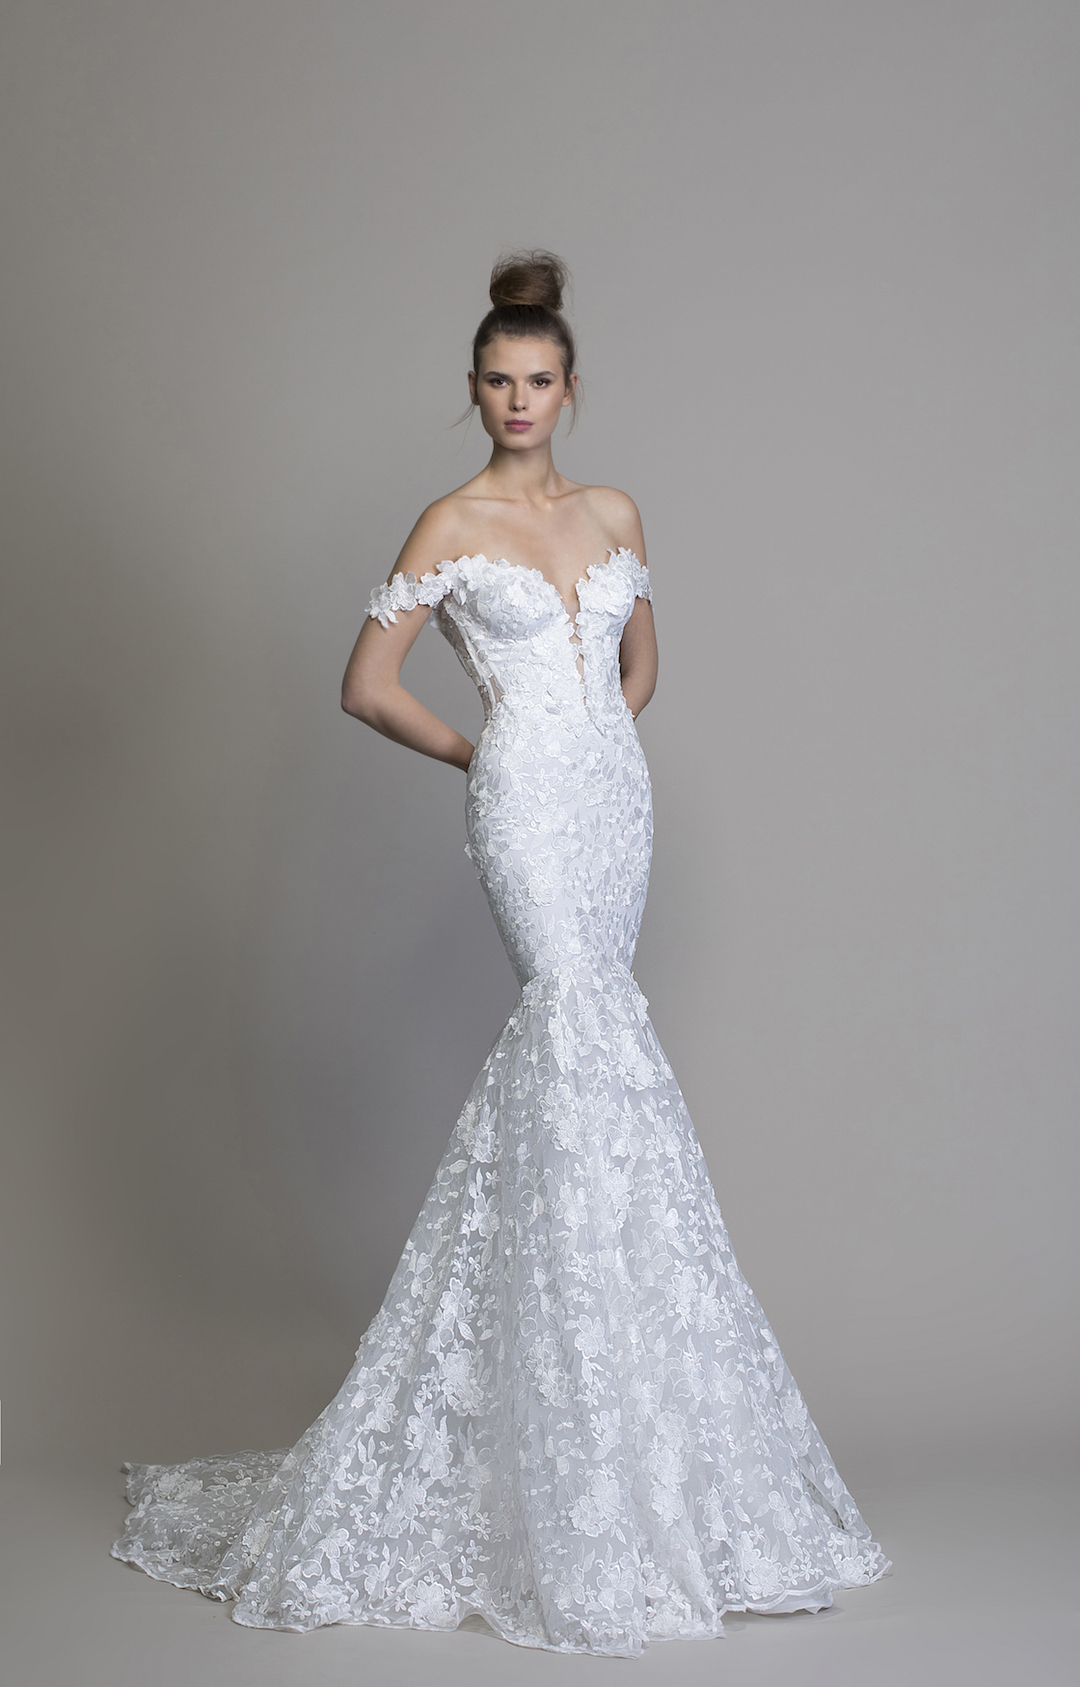 Pnina Tornai's new LOVE 2020 Collection is out! This is style 14771